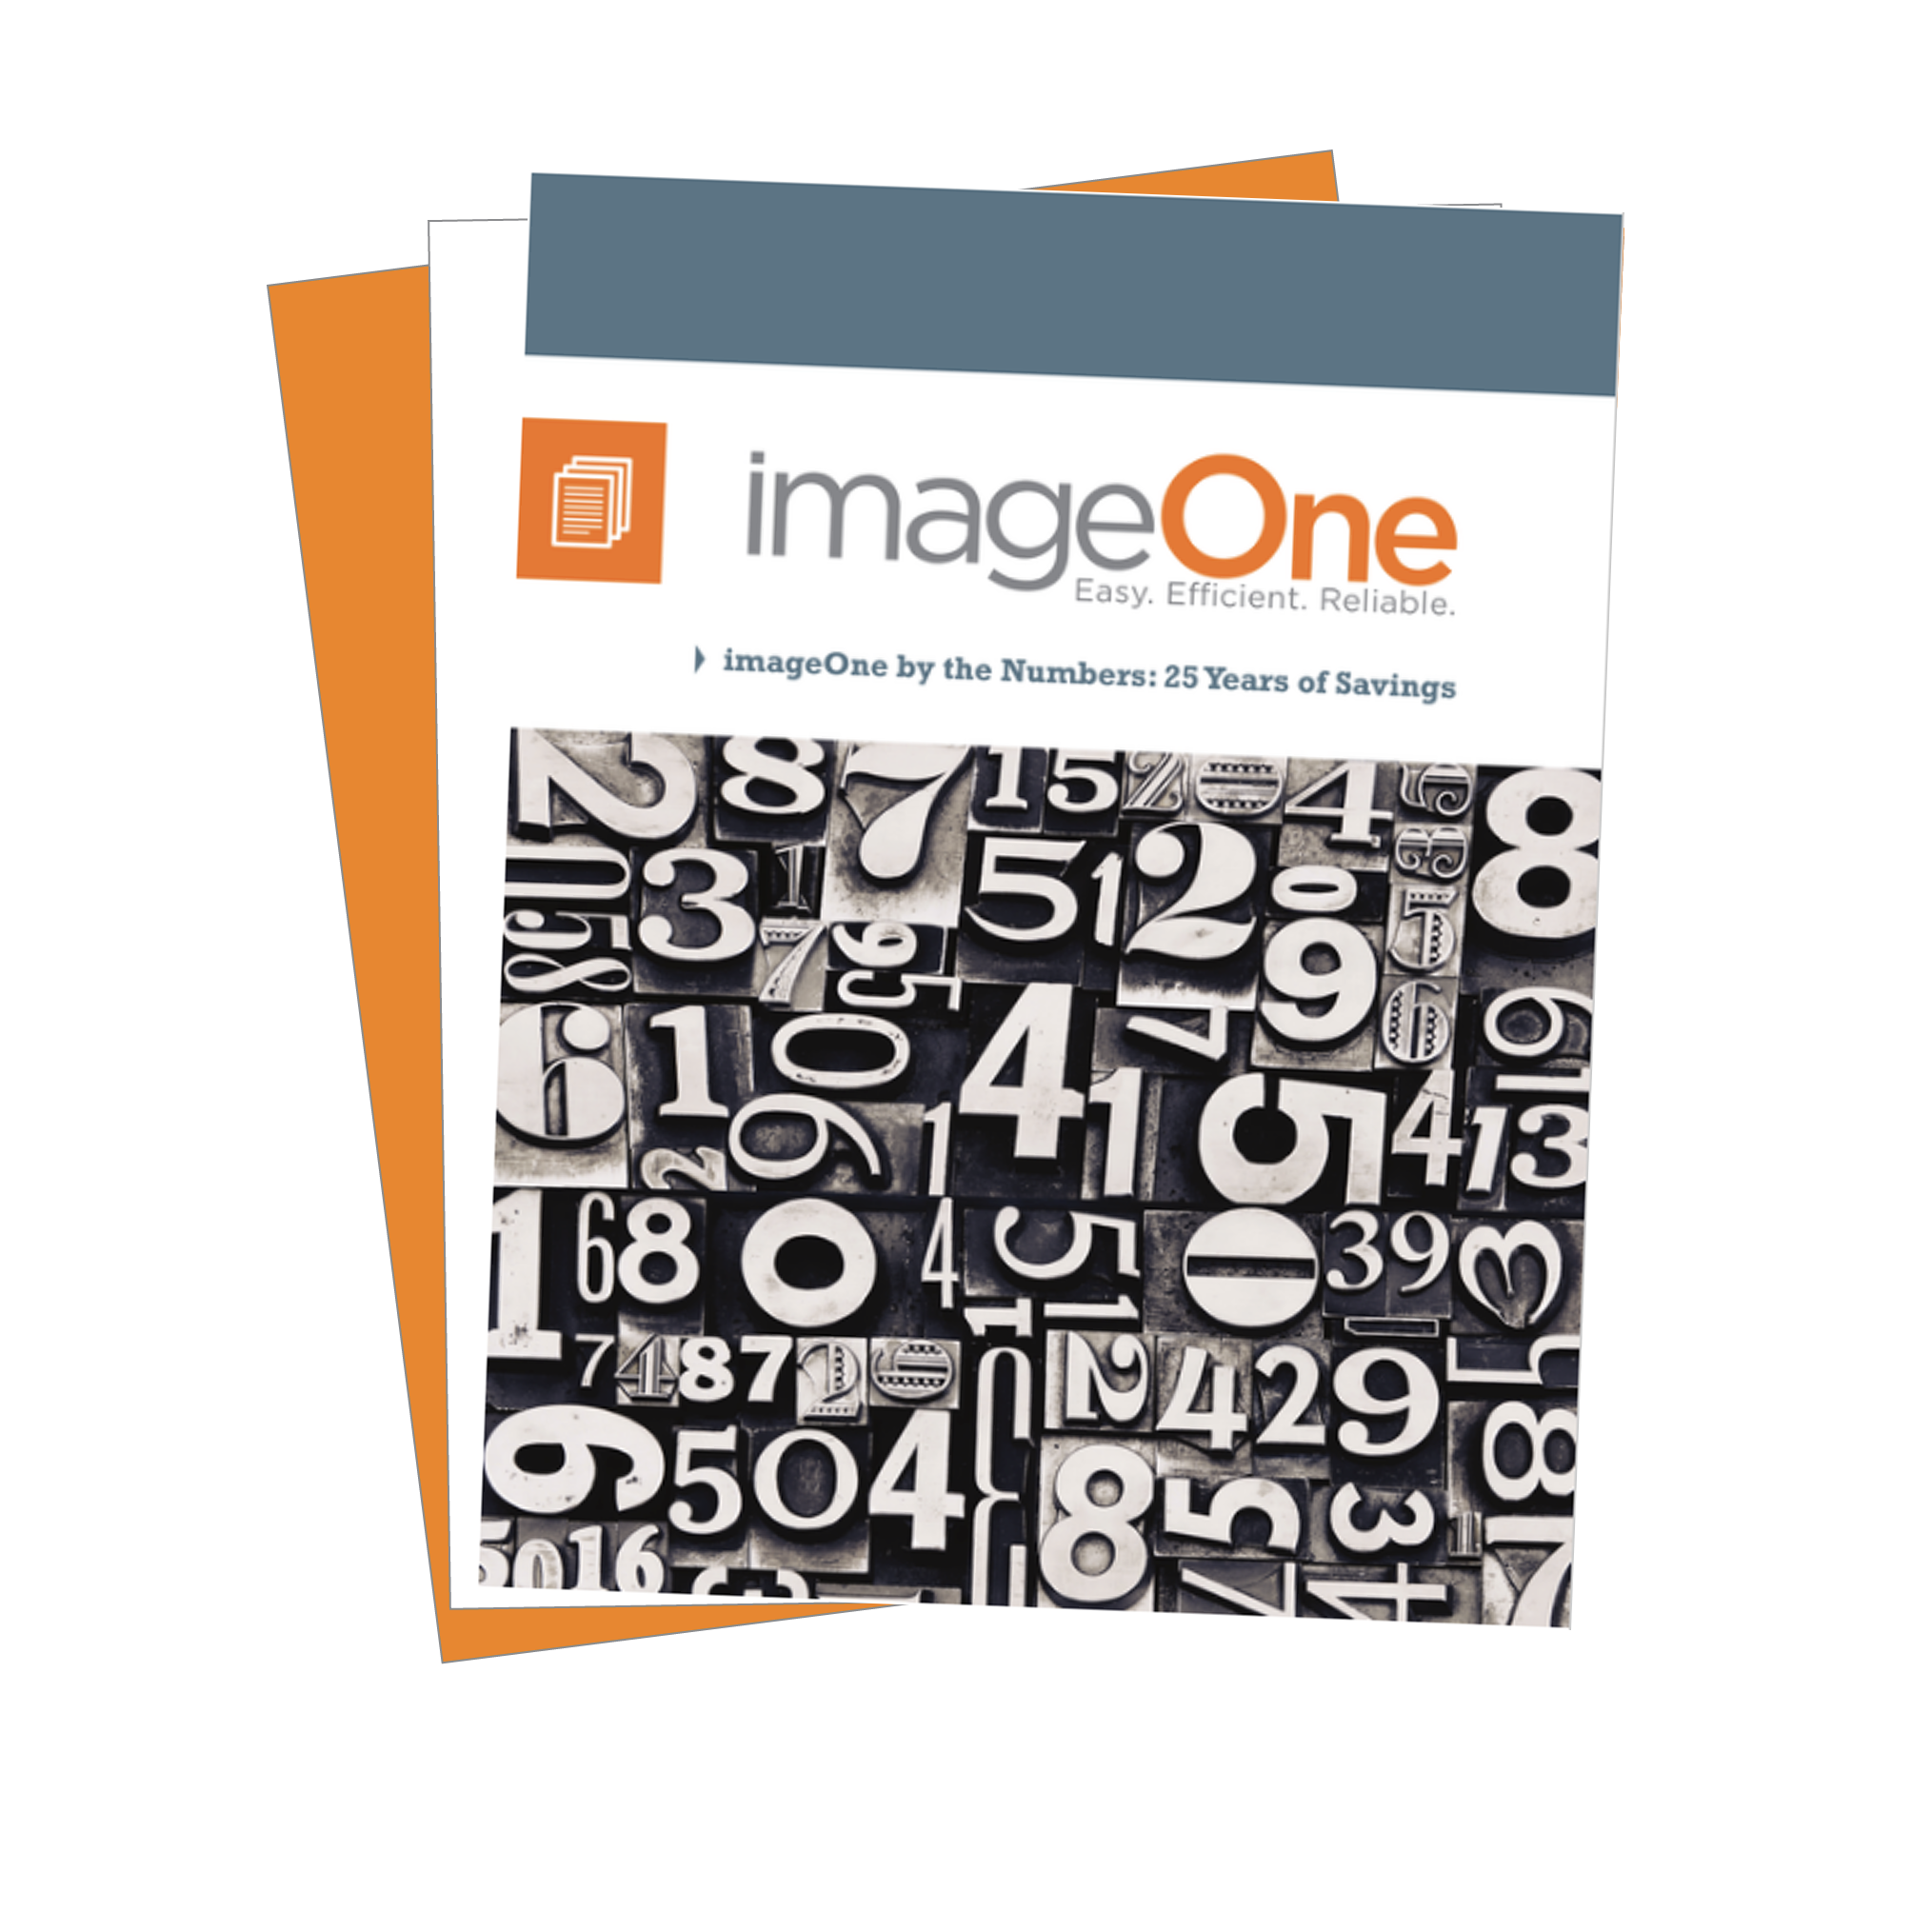 imageOne by the numbers